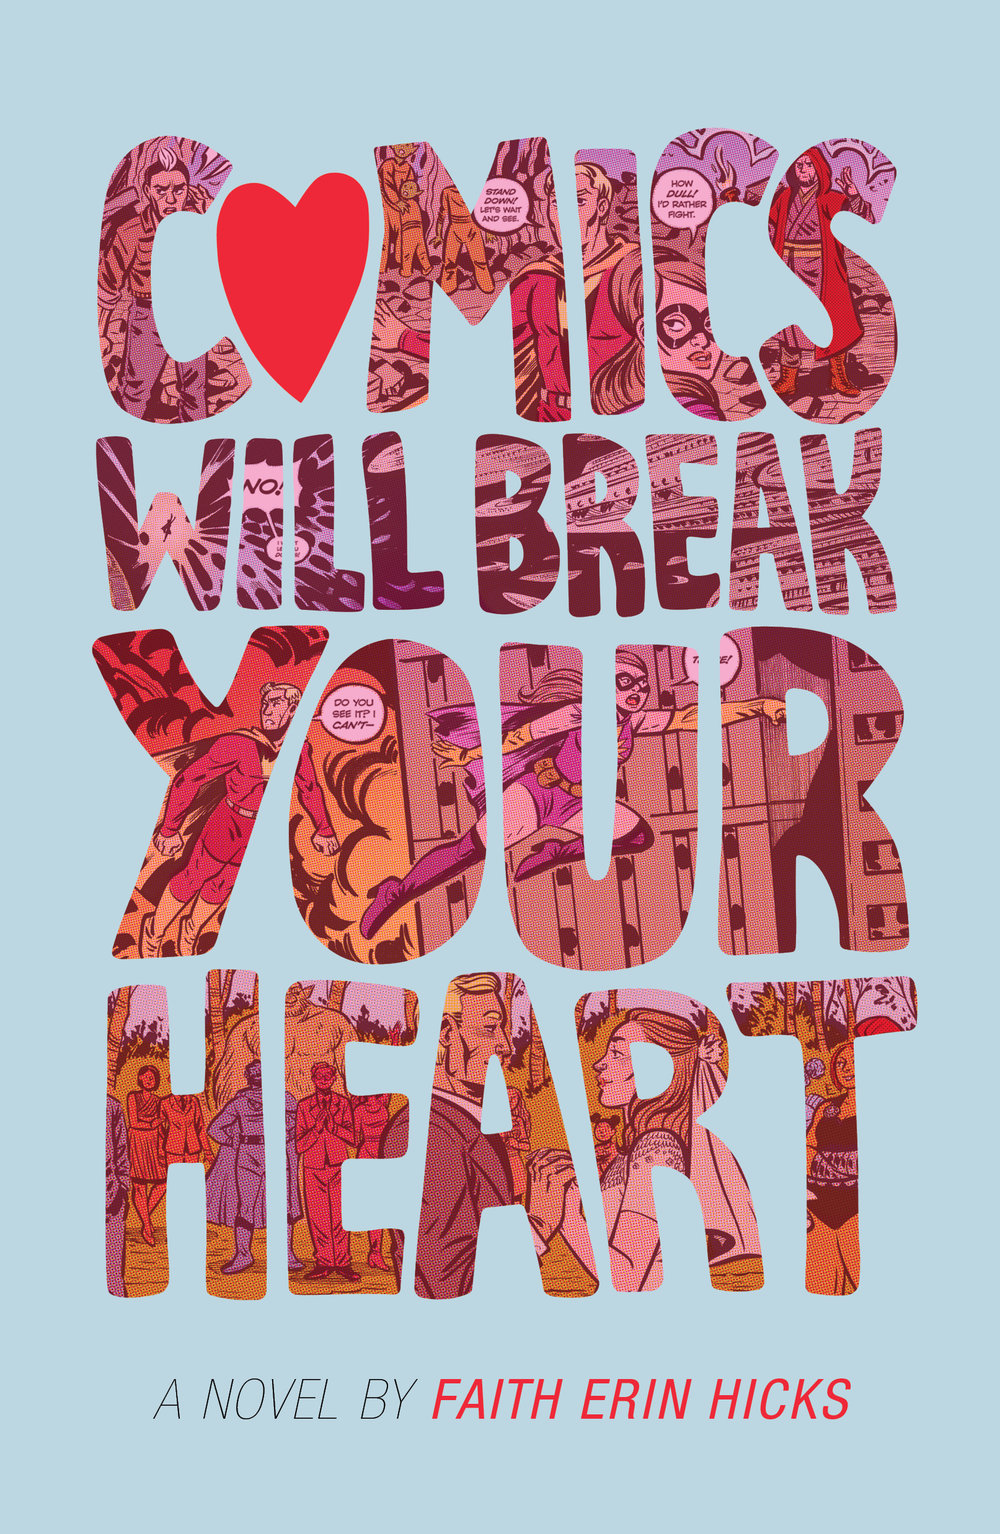 Comics Will Break Your Heart, Faith Erin Hicks For Roaring Brook Press. Illustration by Faith Erin Hicks, lettering by Aimee Fleck.